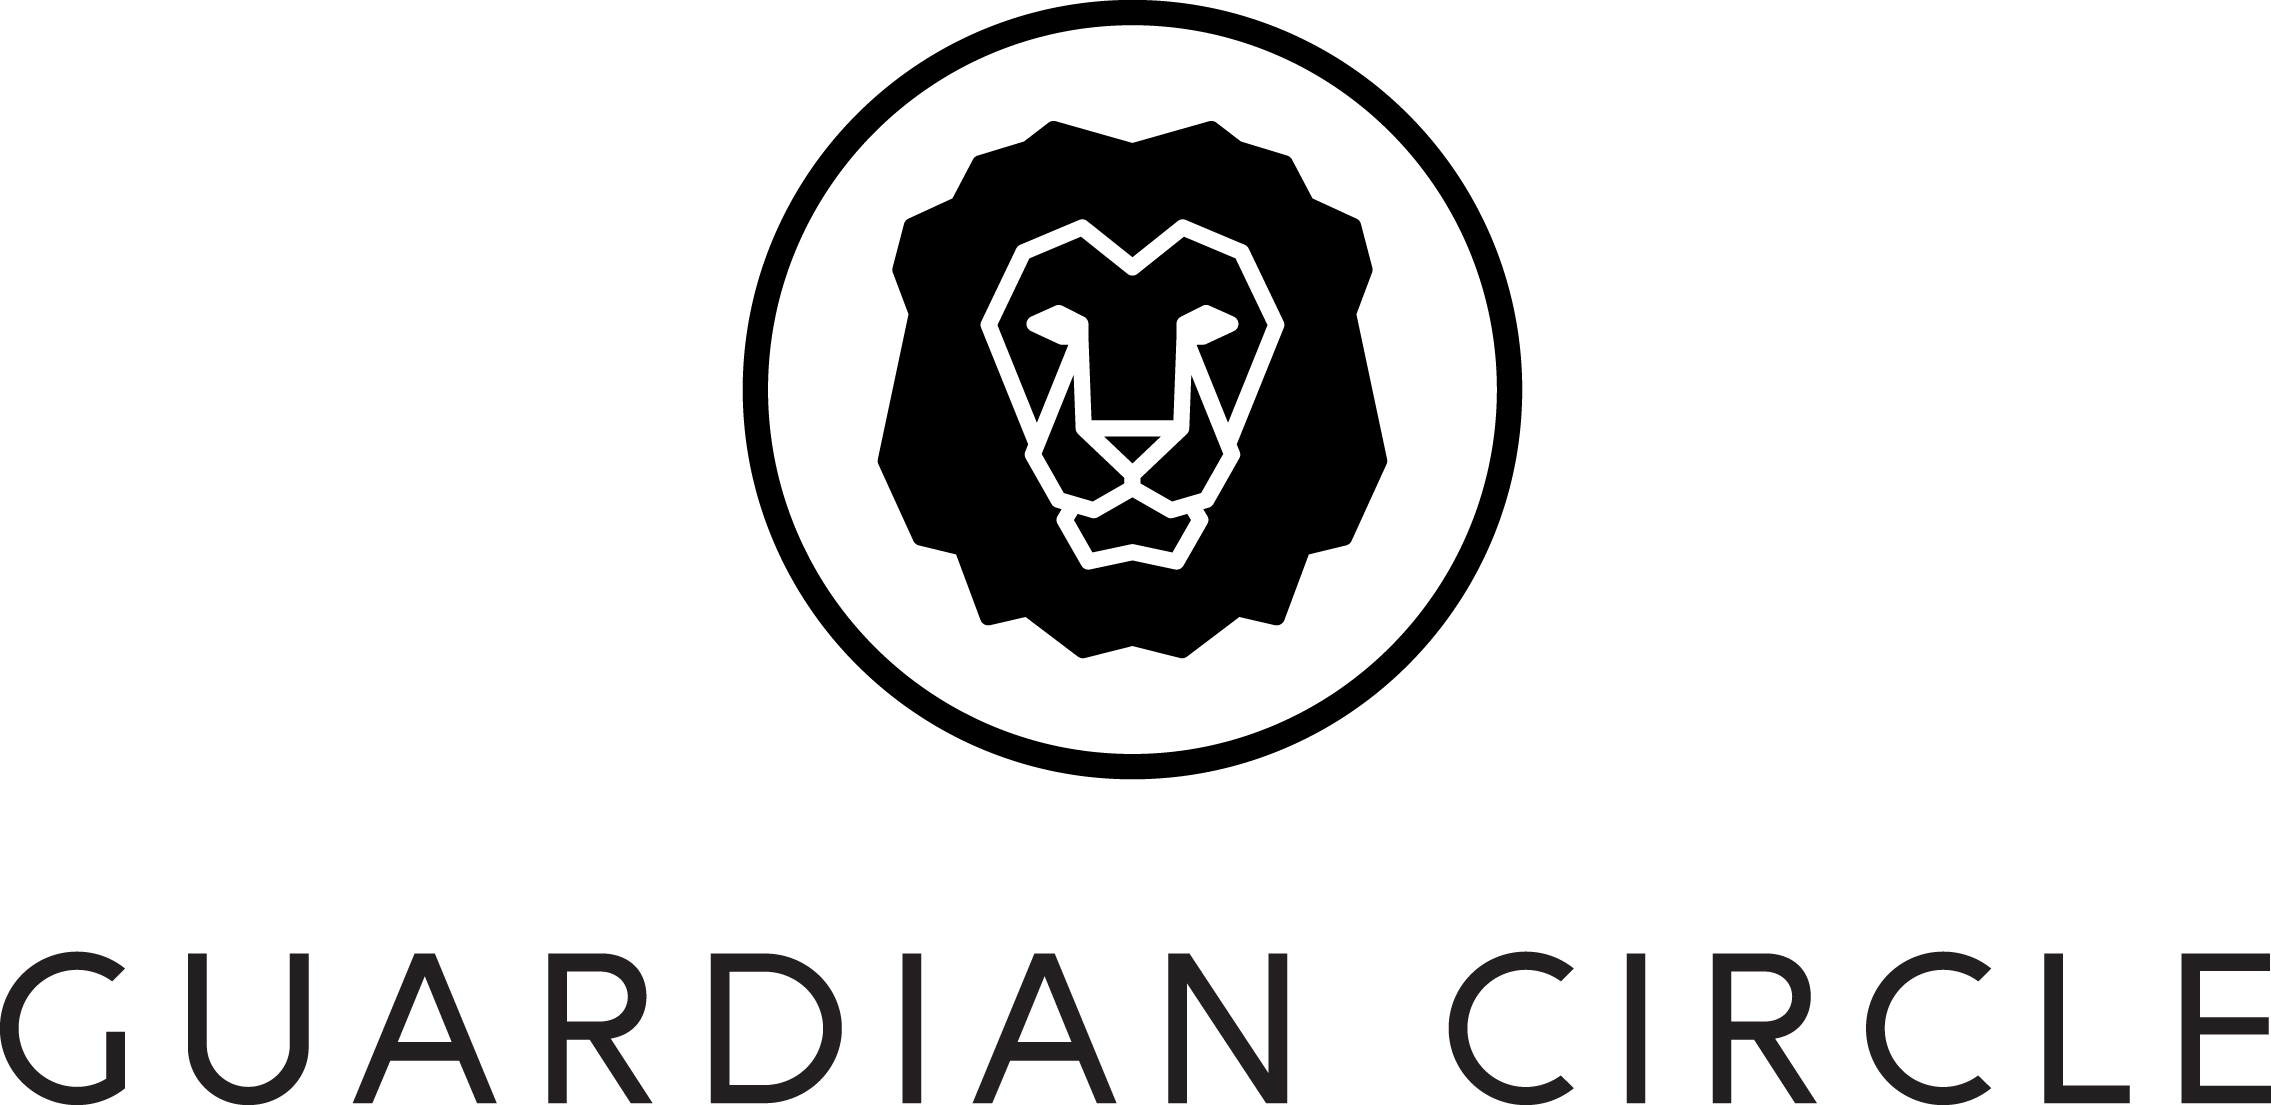 GuardianCircleLogo.jpg